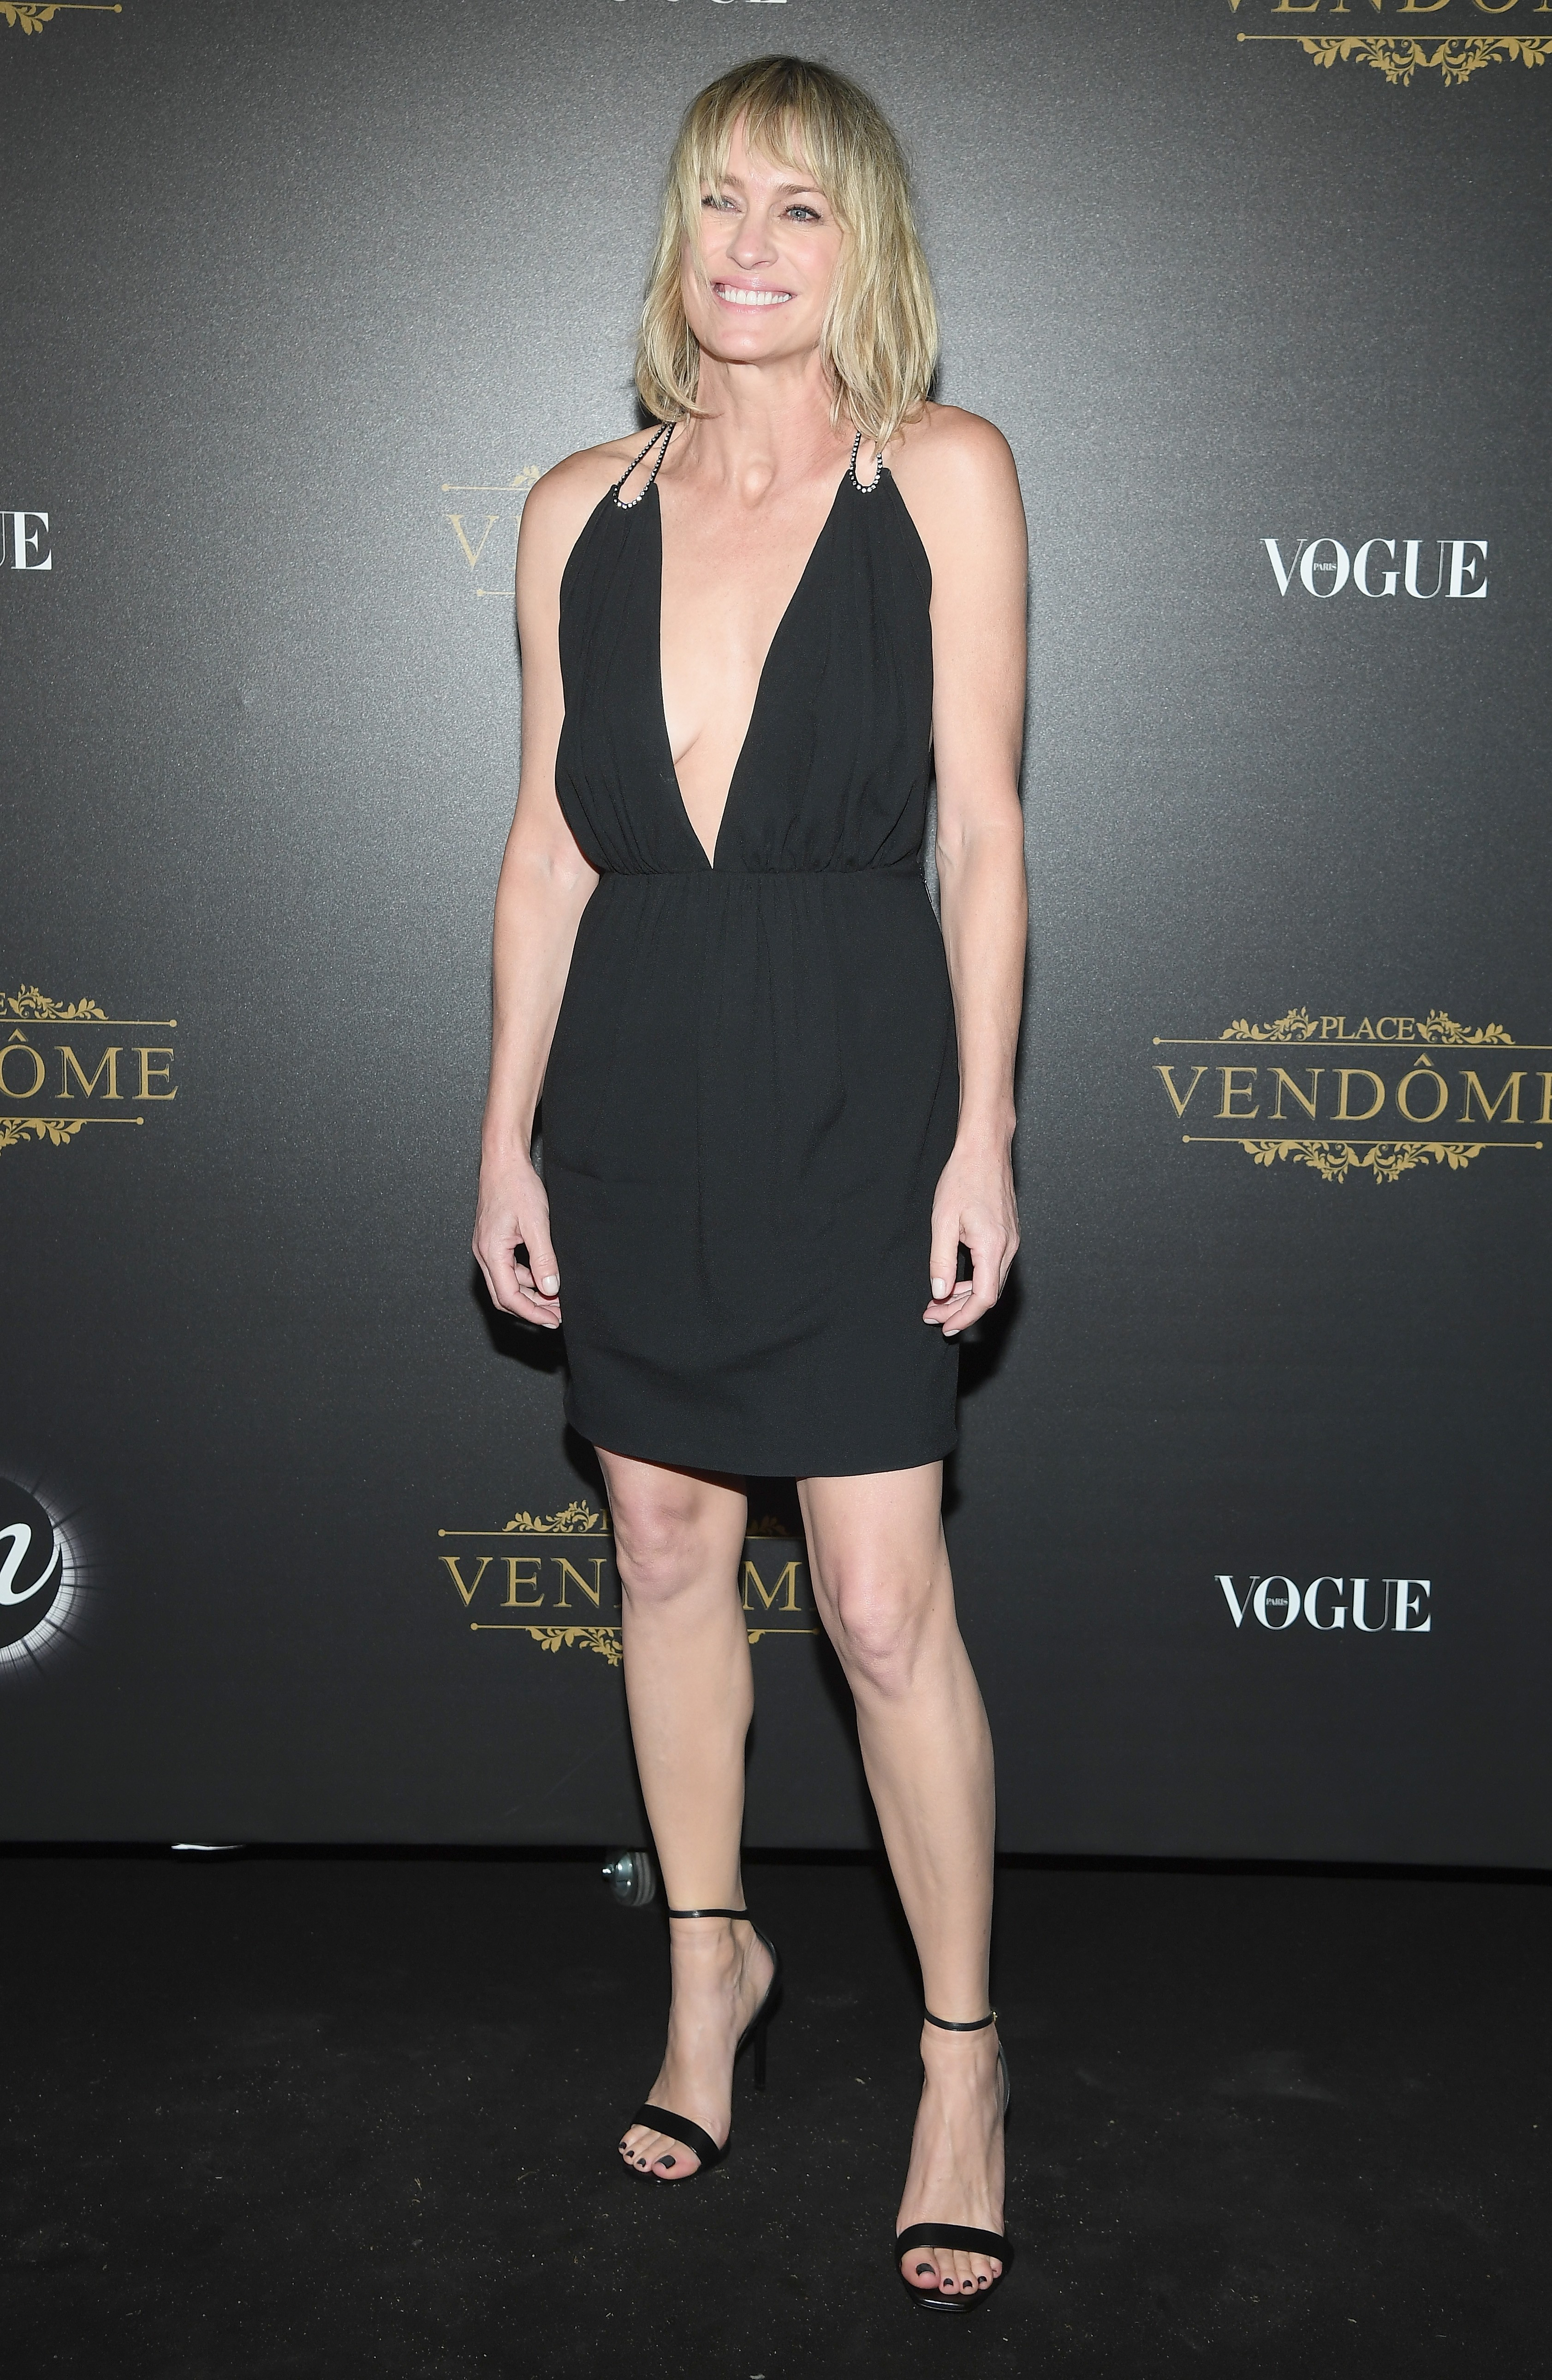 Robin Wright na festa Vogue Paris x Irving Penn (Foto: Pascal Le Segretain/Getty Images)